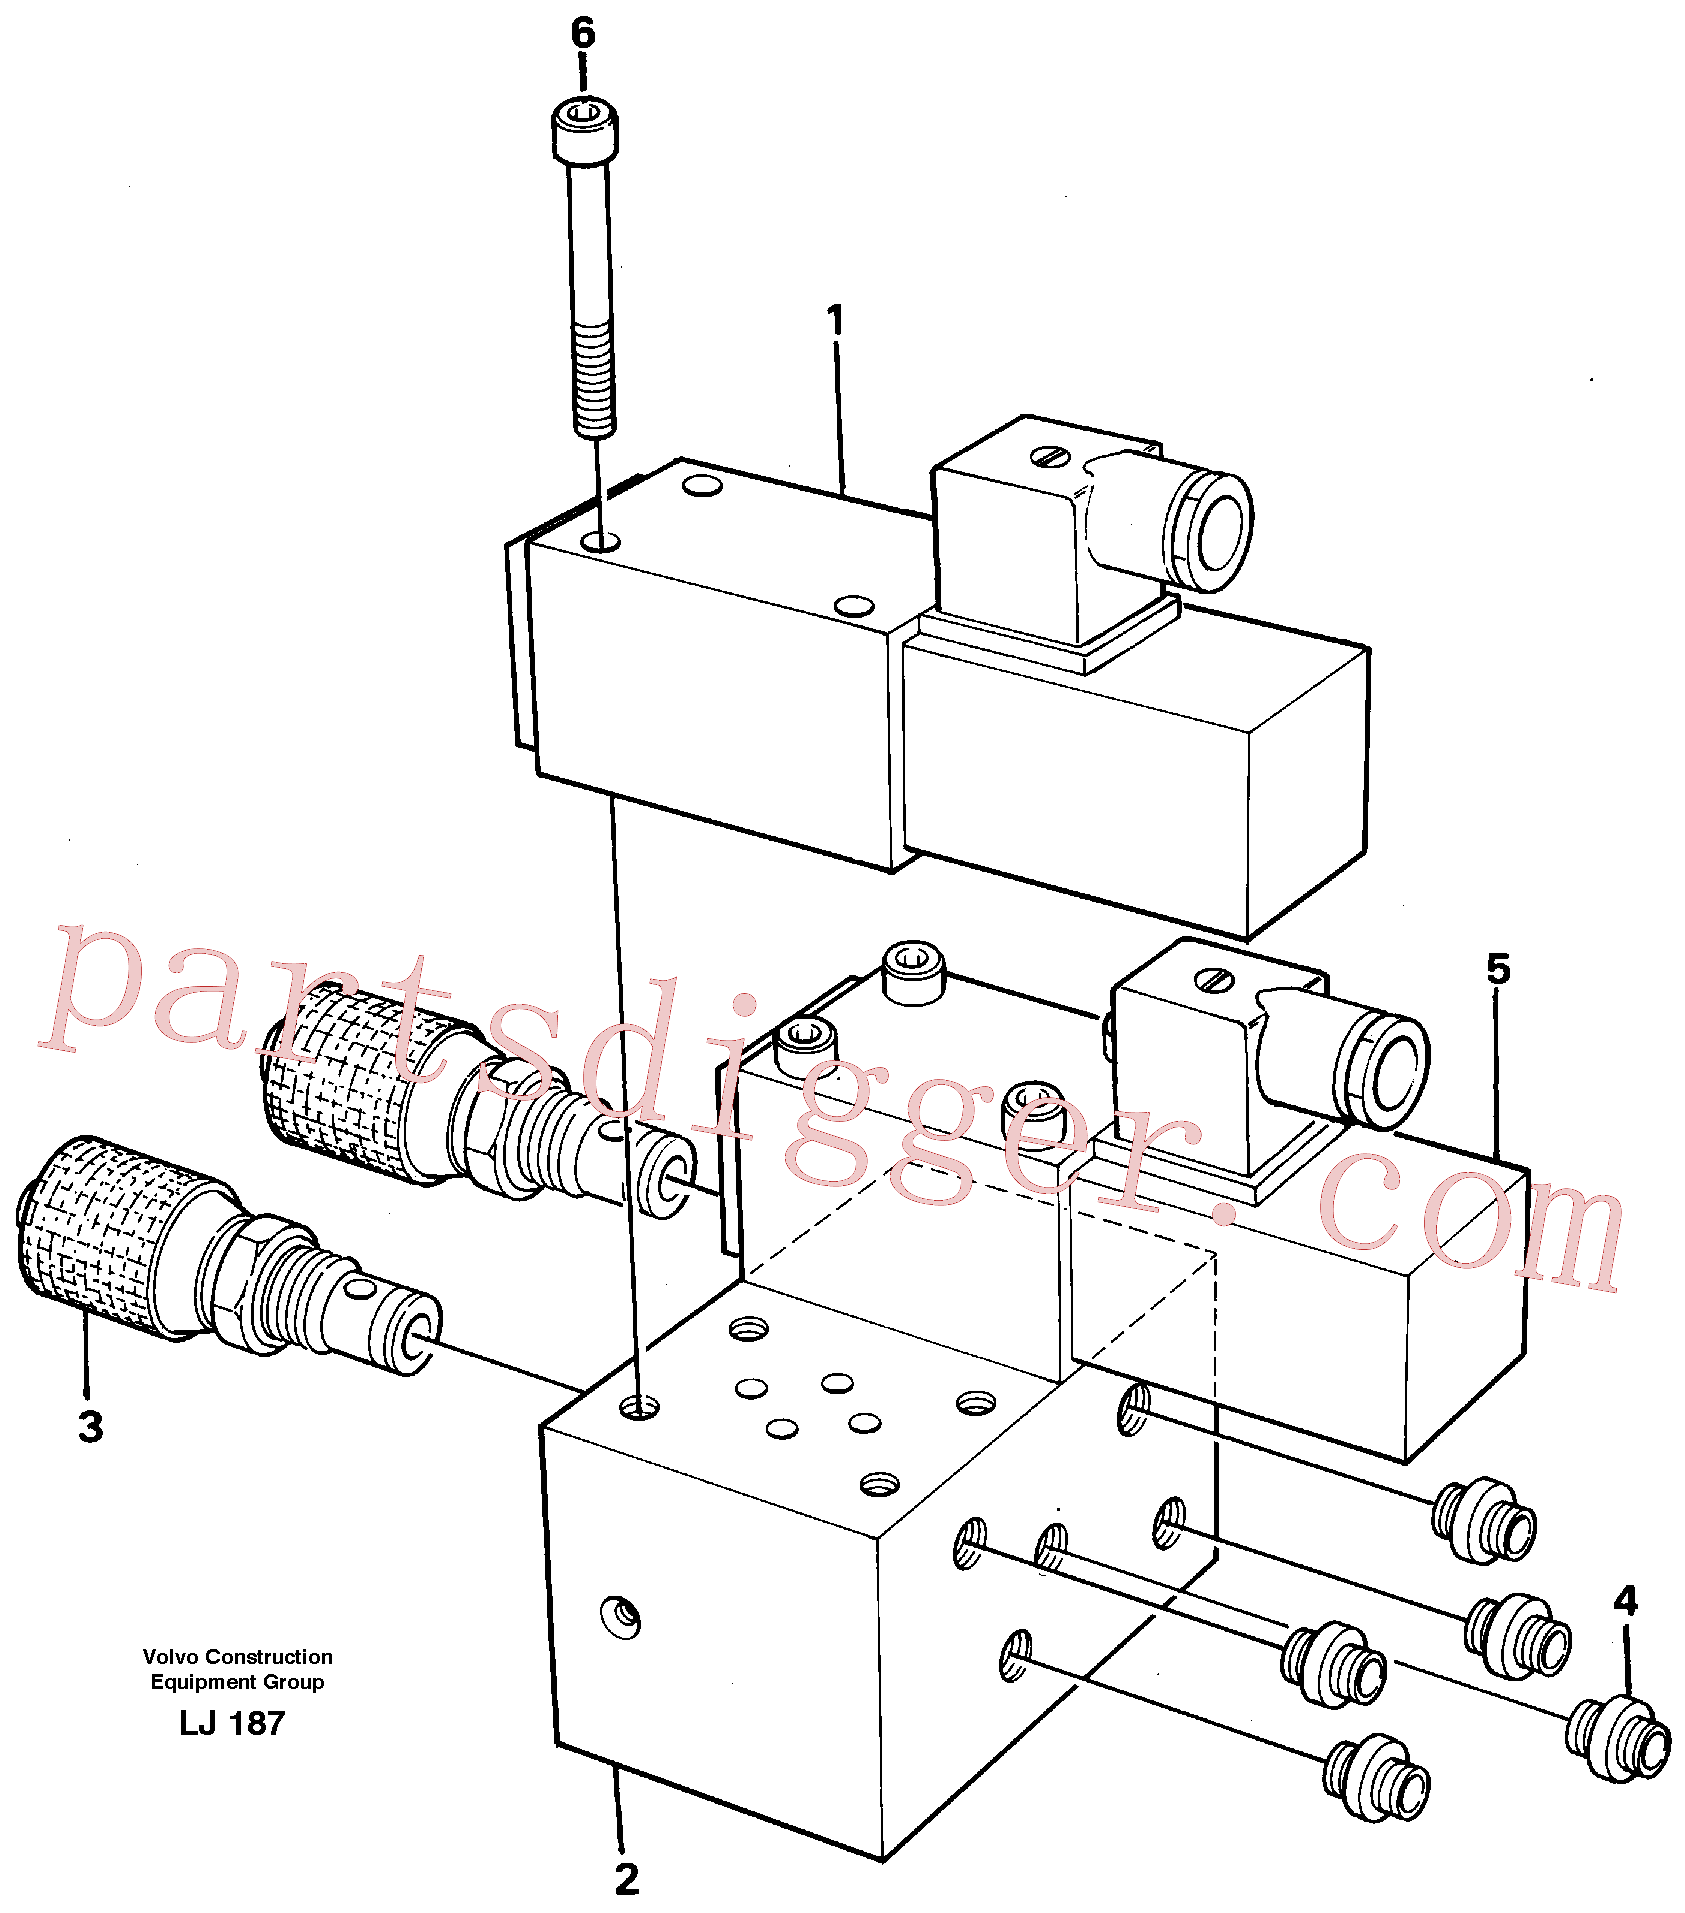 VOE14243114 for Volvo Control block for end position damp(LJ187 assembly)